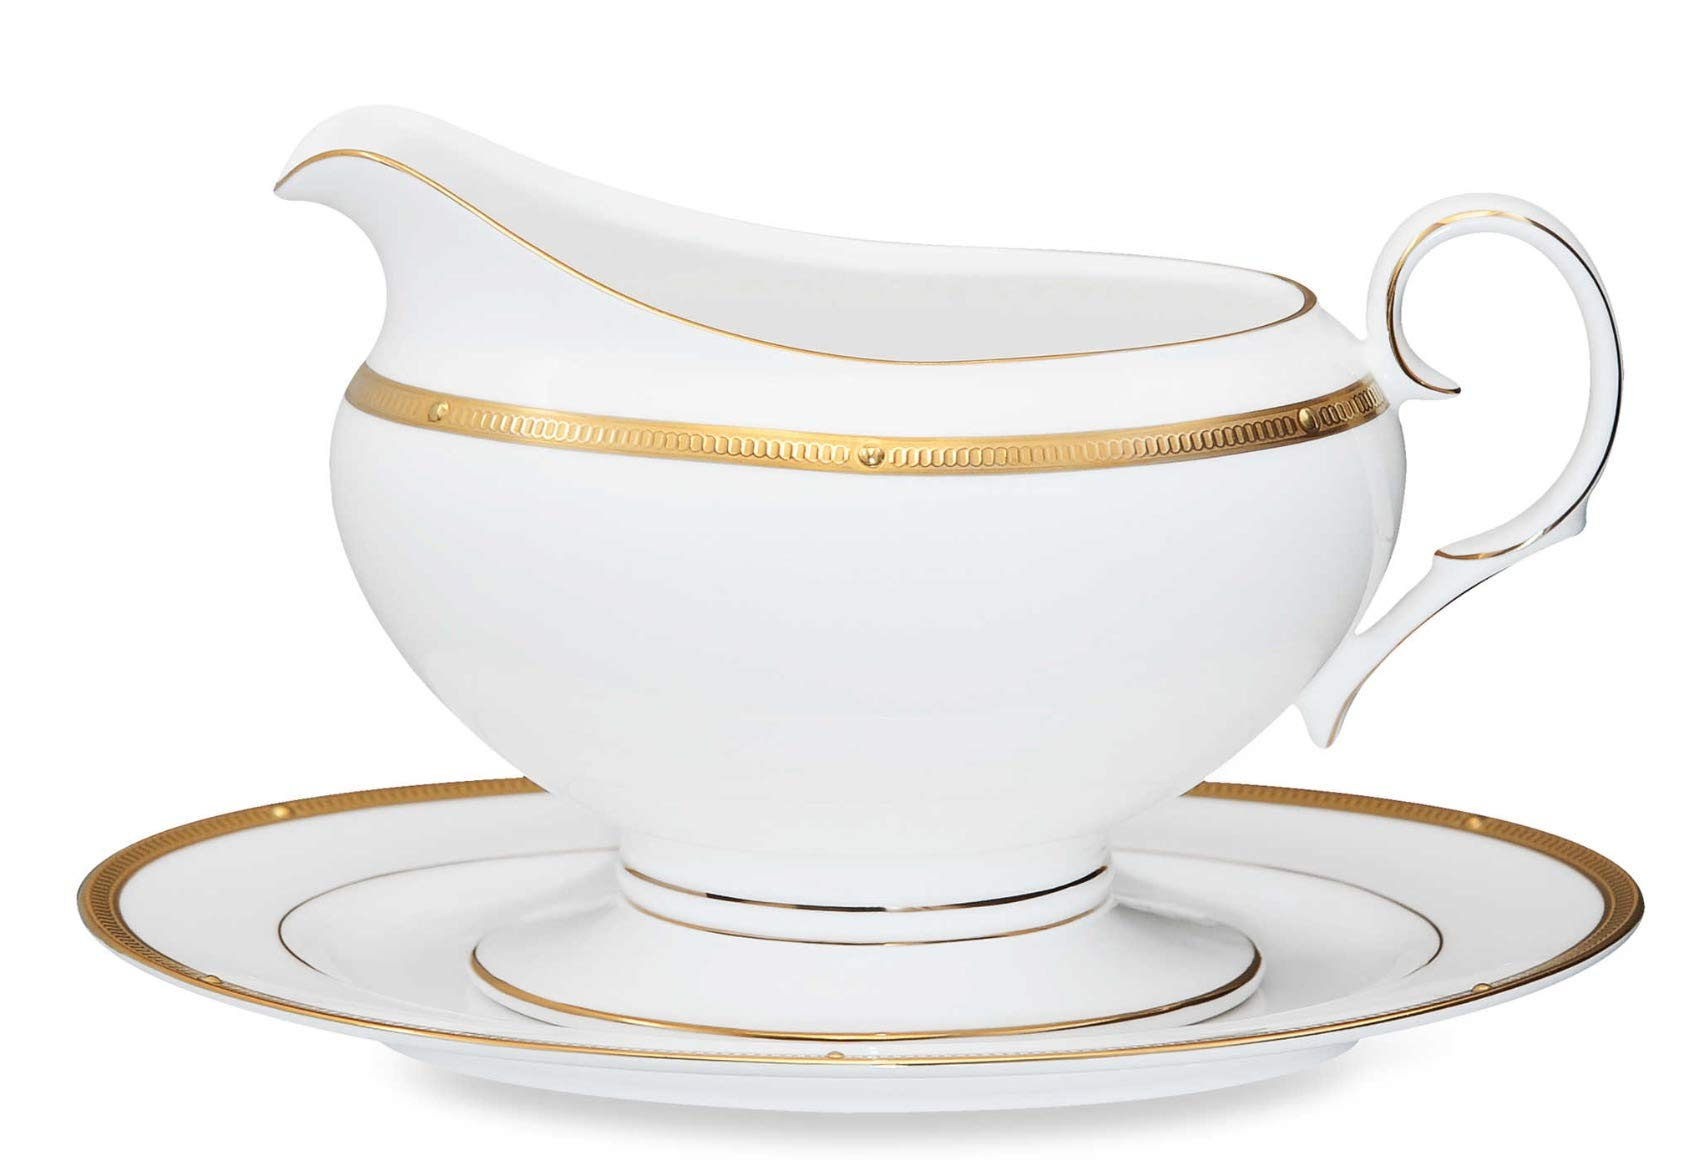 Noritake Rochelle Gold 2-Piece Gravy Boat with Tray, 16-ounce